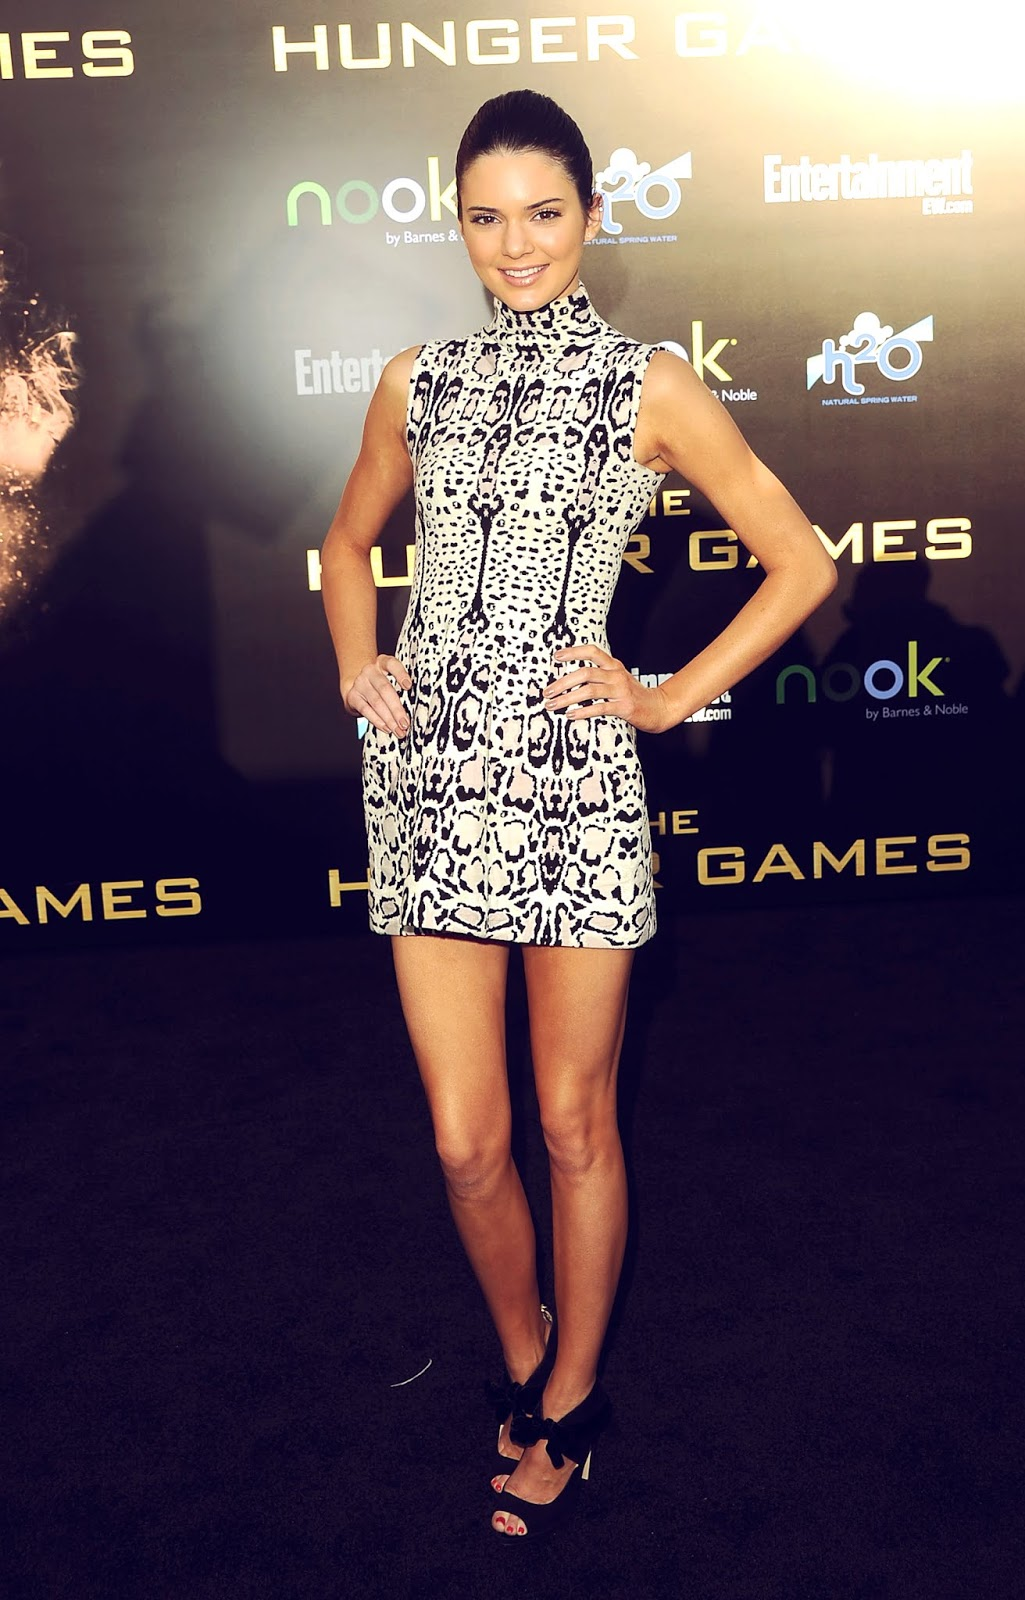 34 - At The Hunger Games Los Angeles Premiere on March 12, 2012